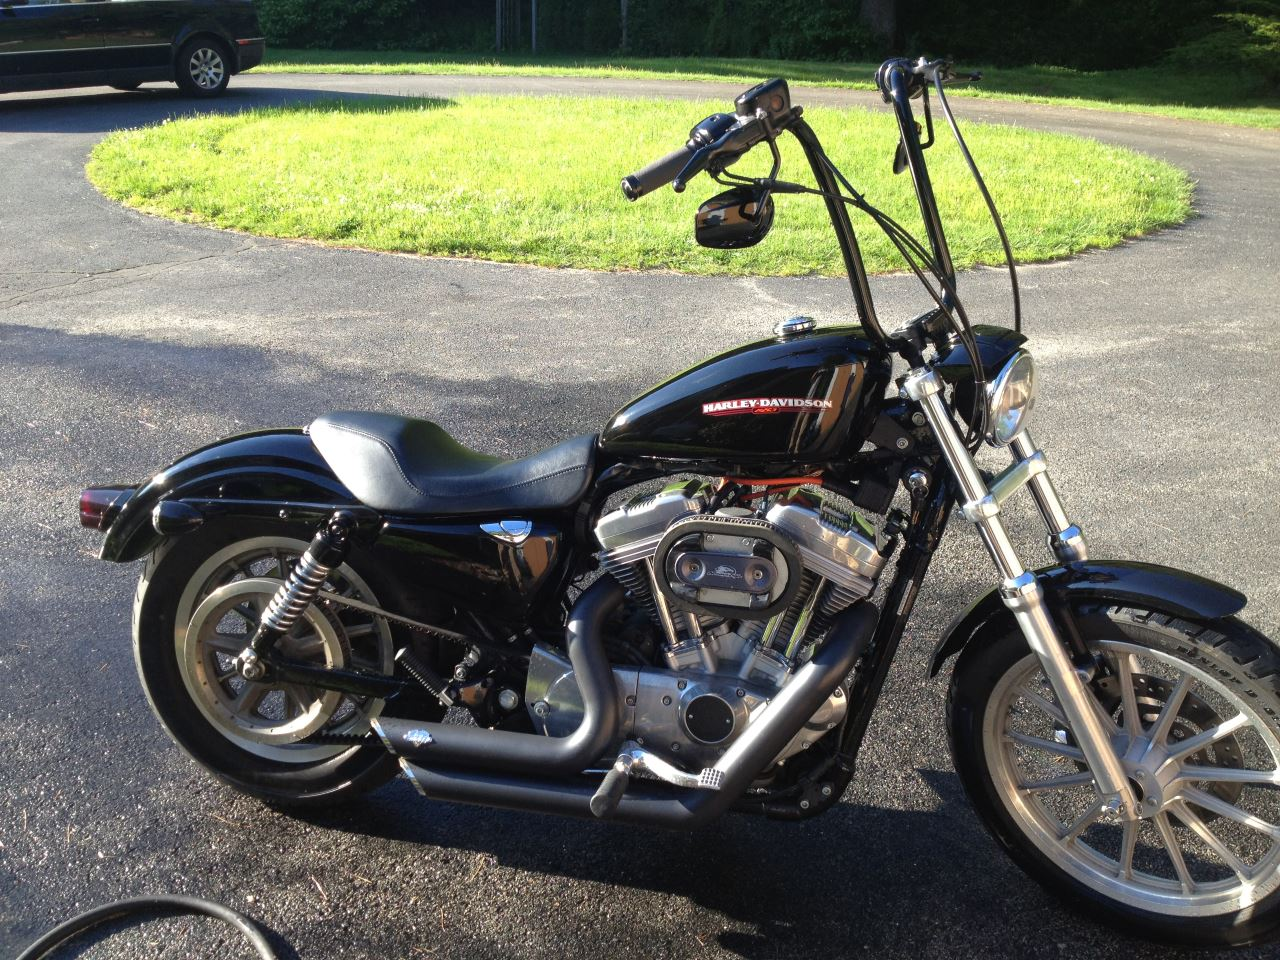 Vstar 650 Wiring Diagram moreover Vstar 1100 Wiring Diagram furthermore Yamaha V Star 650 Parts And Accessories also Wiring Diagram For Each Domain Of Math Al additionally Xj550 Bobber Wiring. on yamaha xvs650 wiring diagram